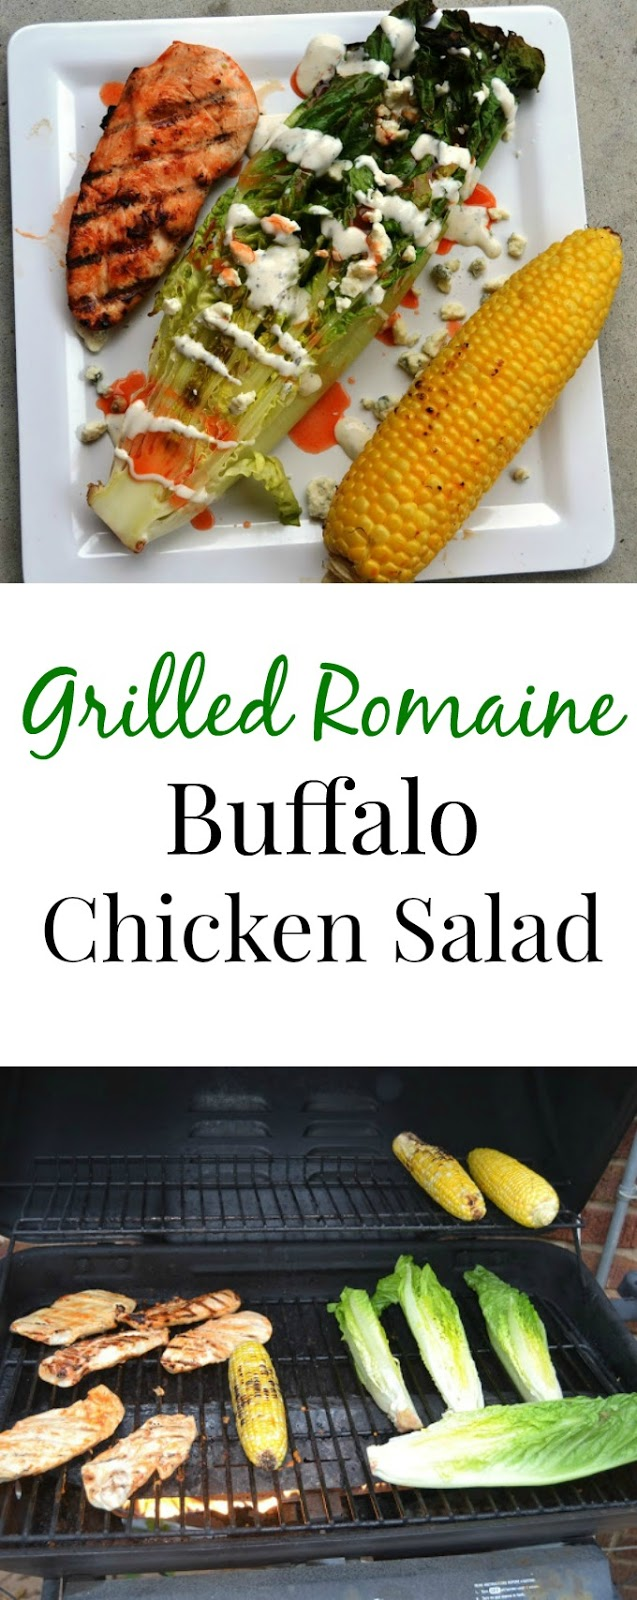 This Grilled Romaine Buffalo Chicken Salad is easy to make and makes the perfect easy meal! www.nutritionistreviews.com